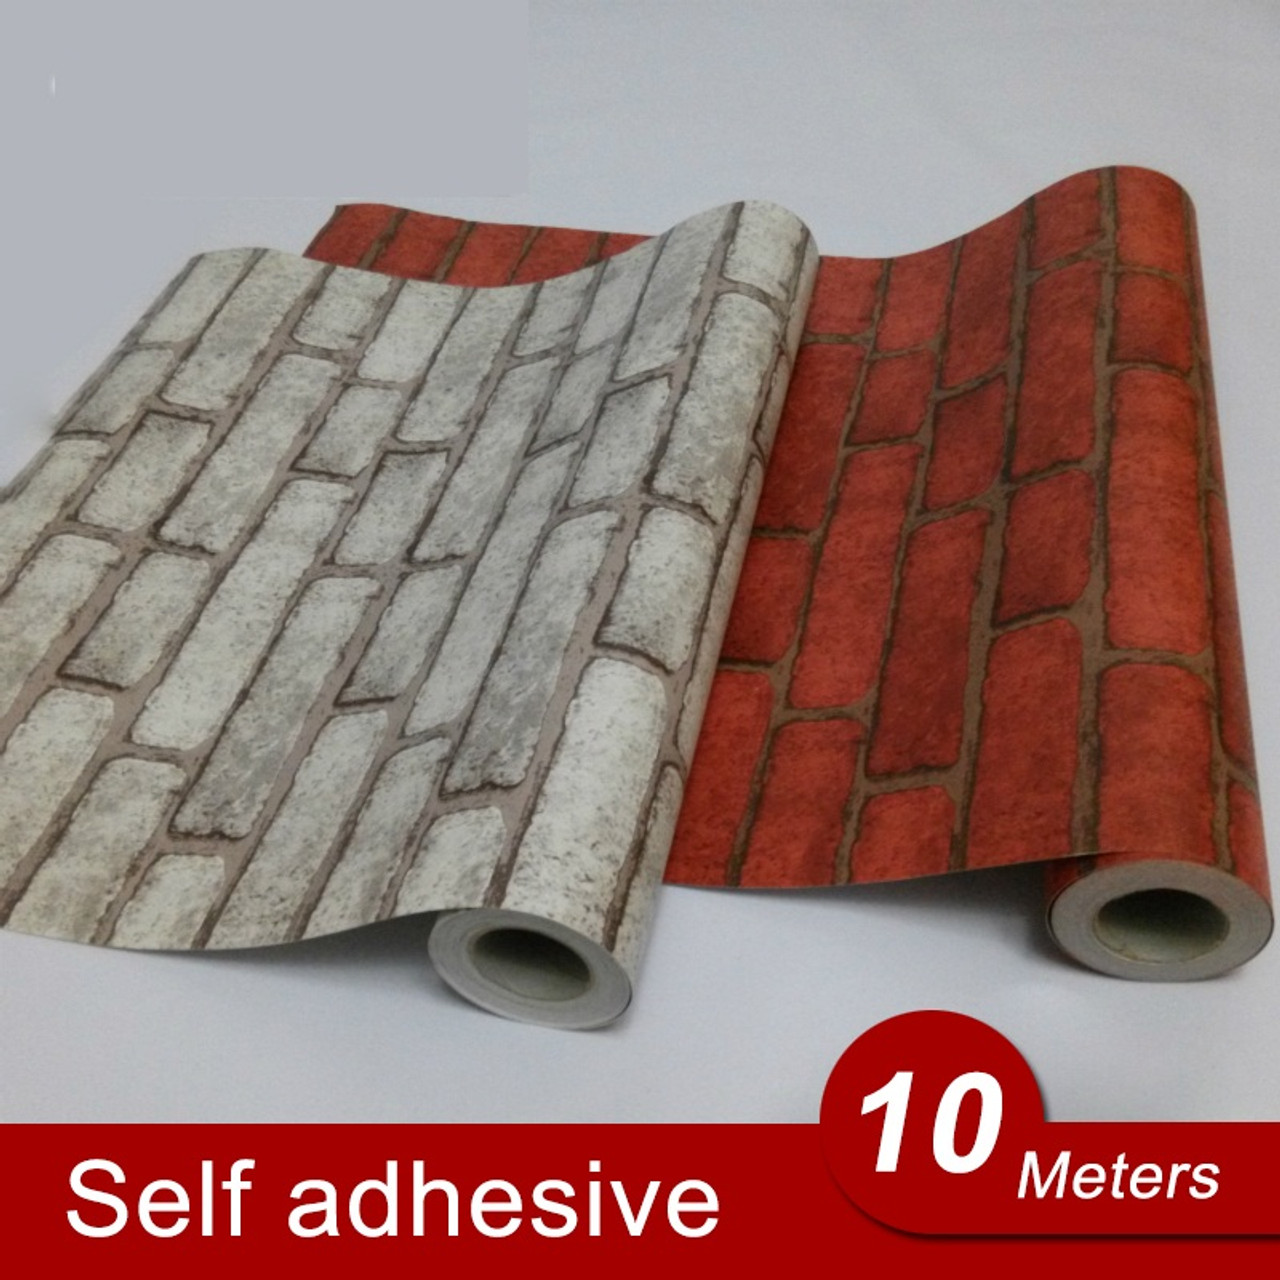 10m back with glue vinyl self adhesive wallpaper pvc wall stickers